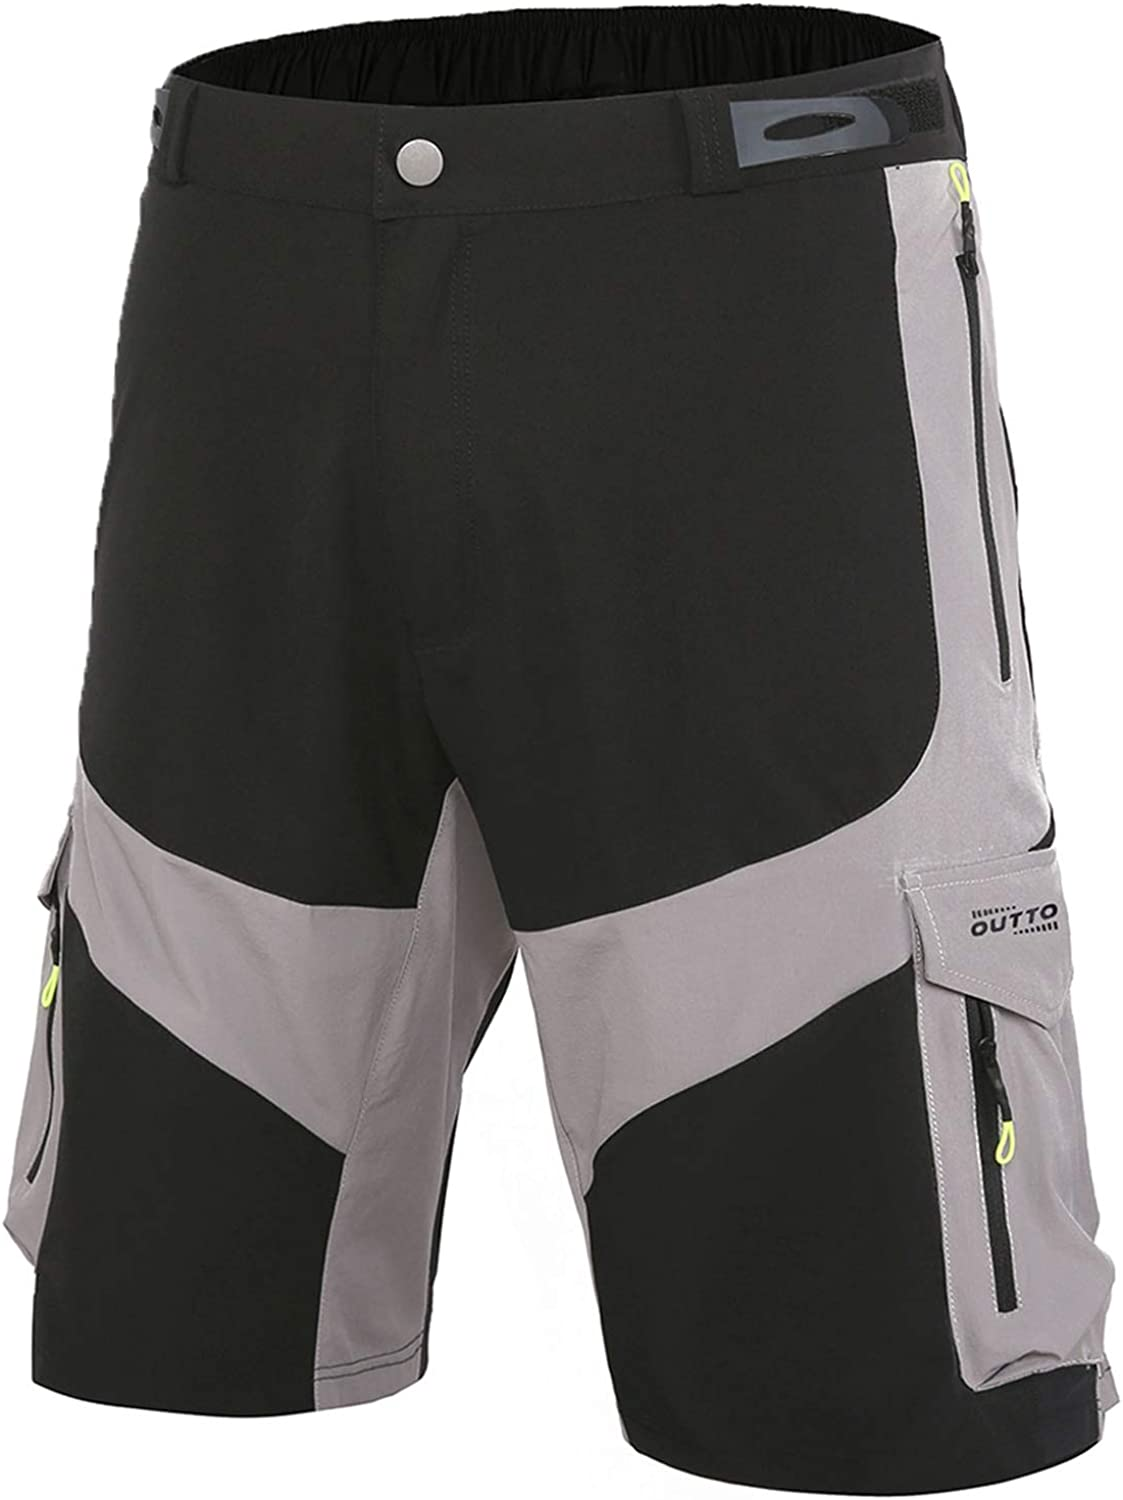 Outto Long Beach Mall Men's Cycling Shorts Baggy with Cargo Moutain Los Angeles Mall Bike